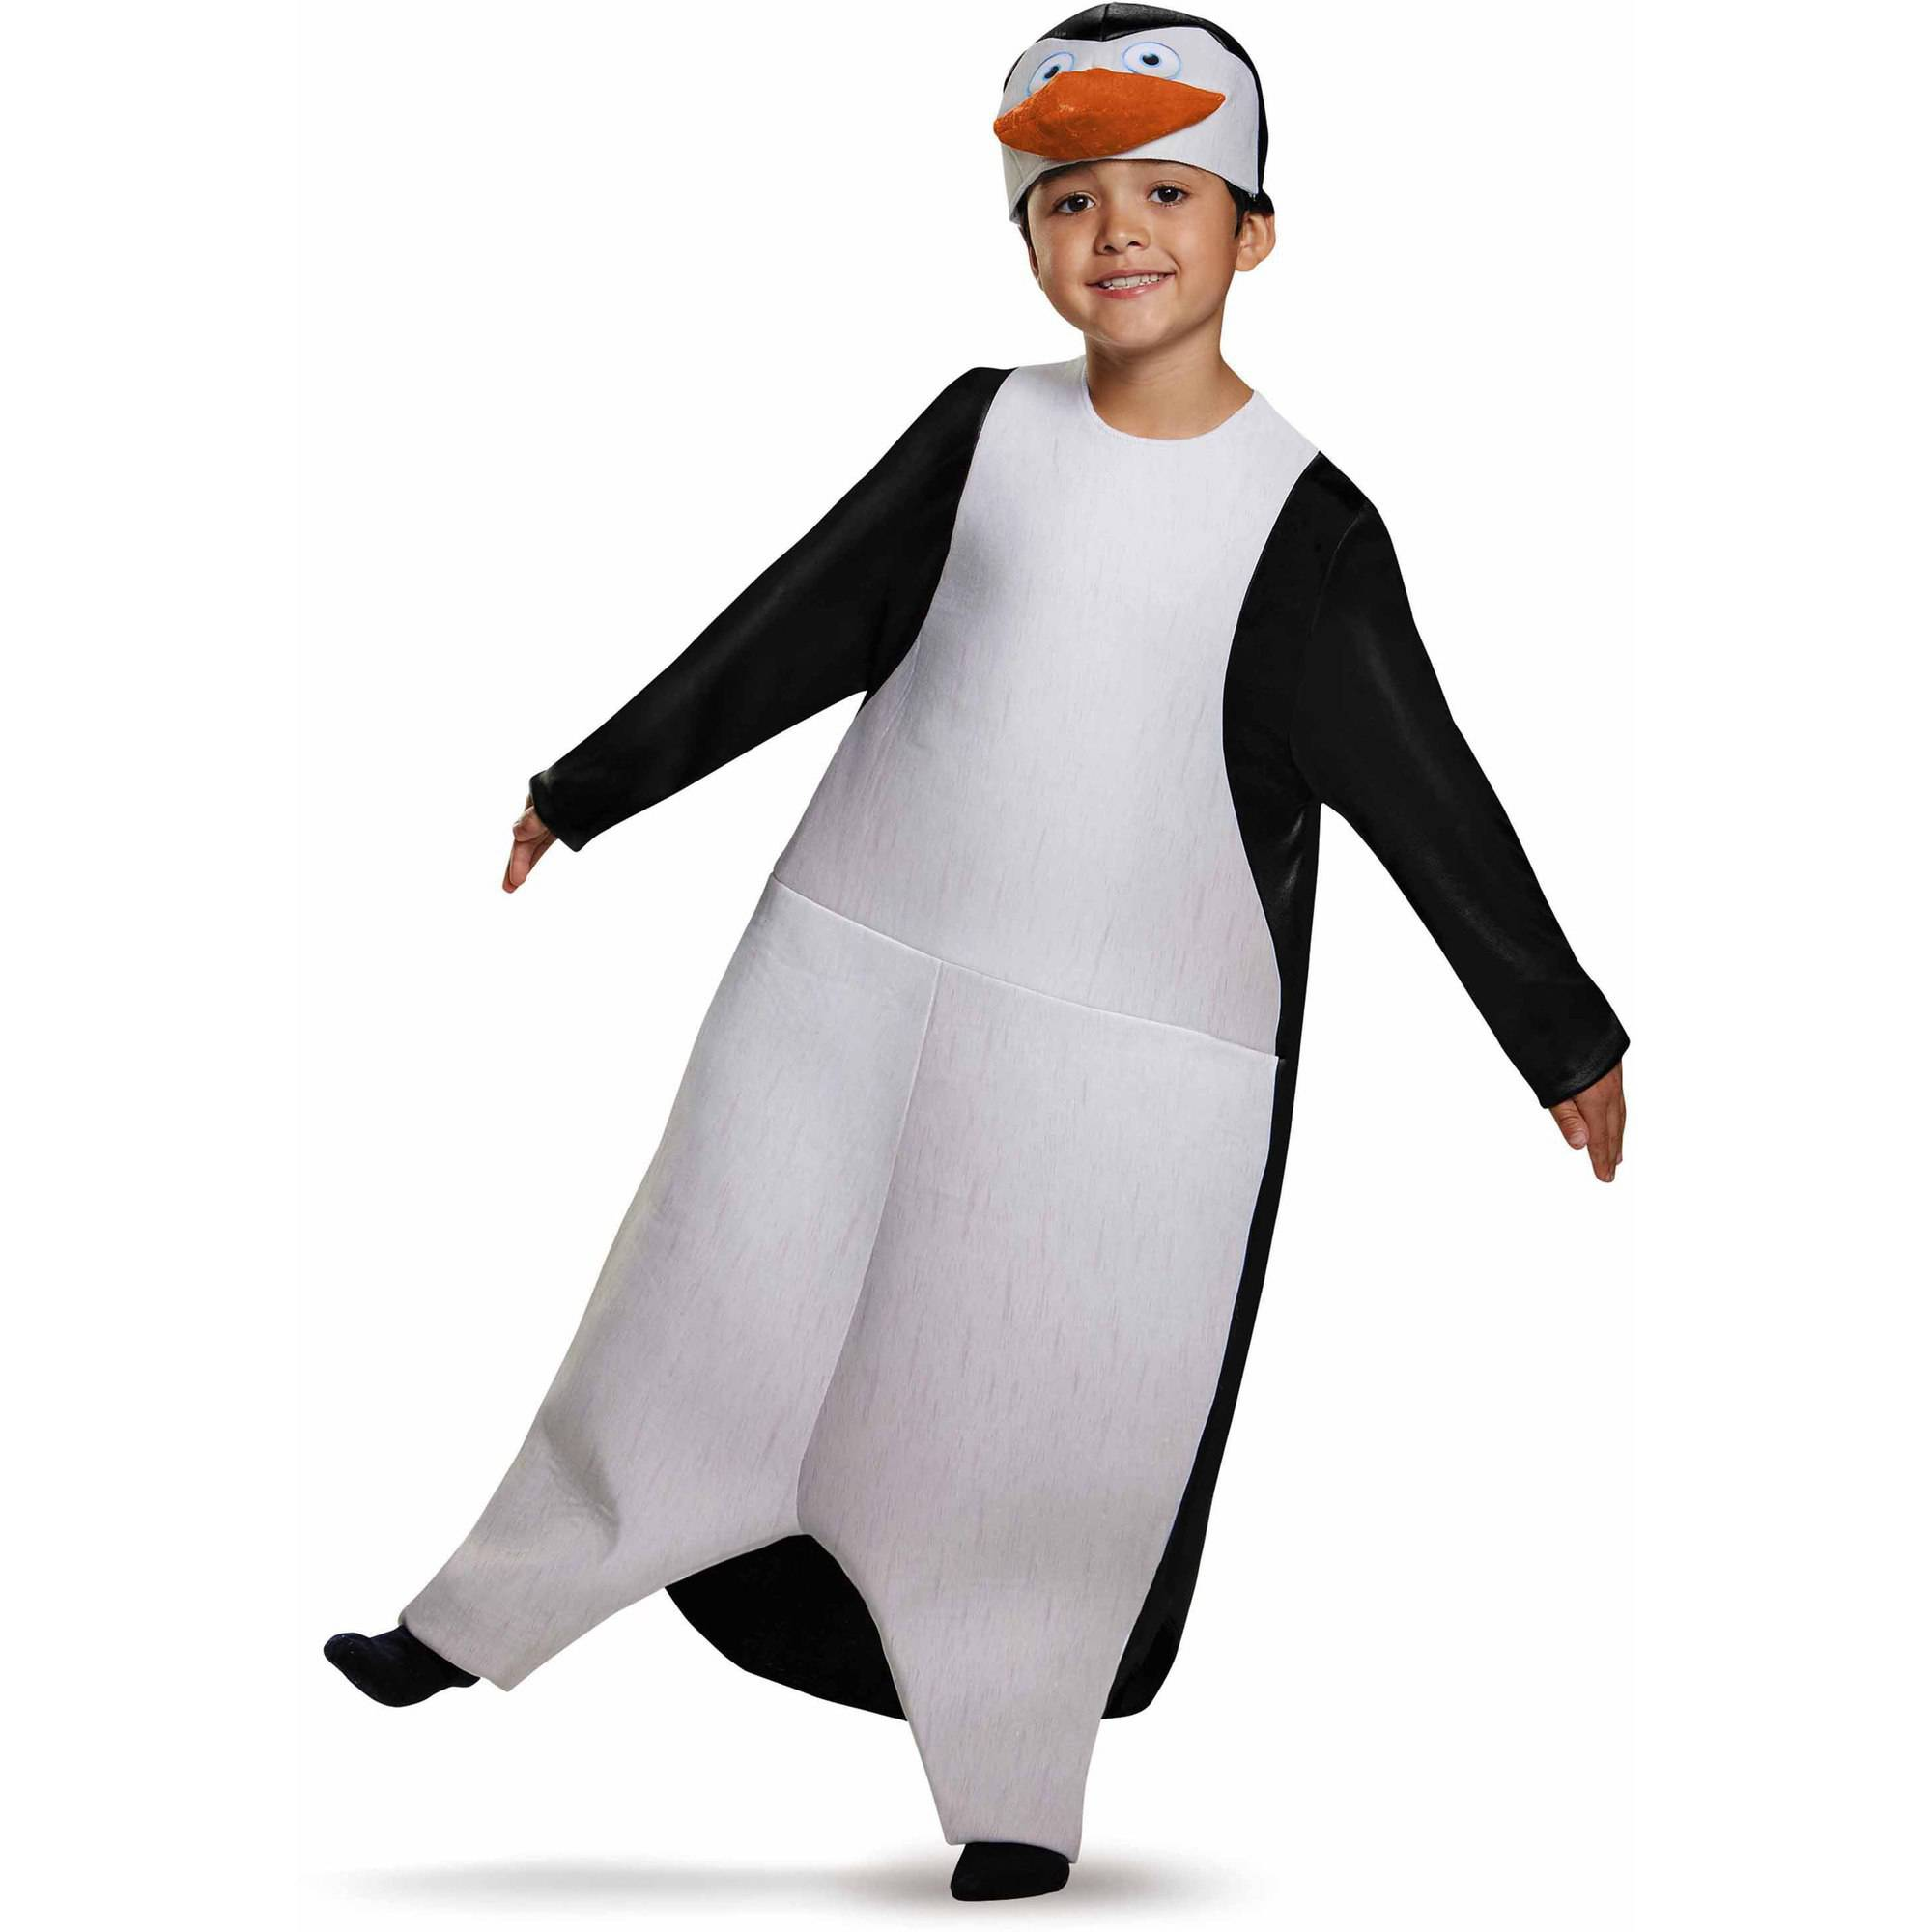 Penguins of Madagascar Skipper Classic Child Halloween Dress Up / Role Play Costume  sc 1 st  Walmart & Penguins of Madagascar Skipper Classic Child Halloween Dress Up ...